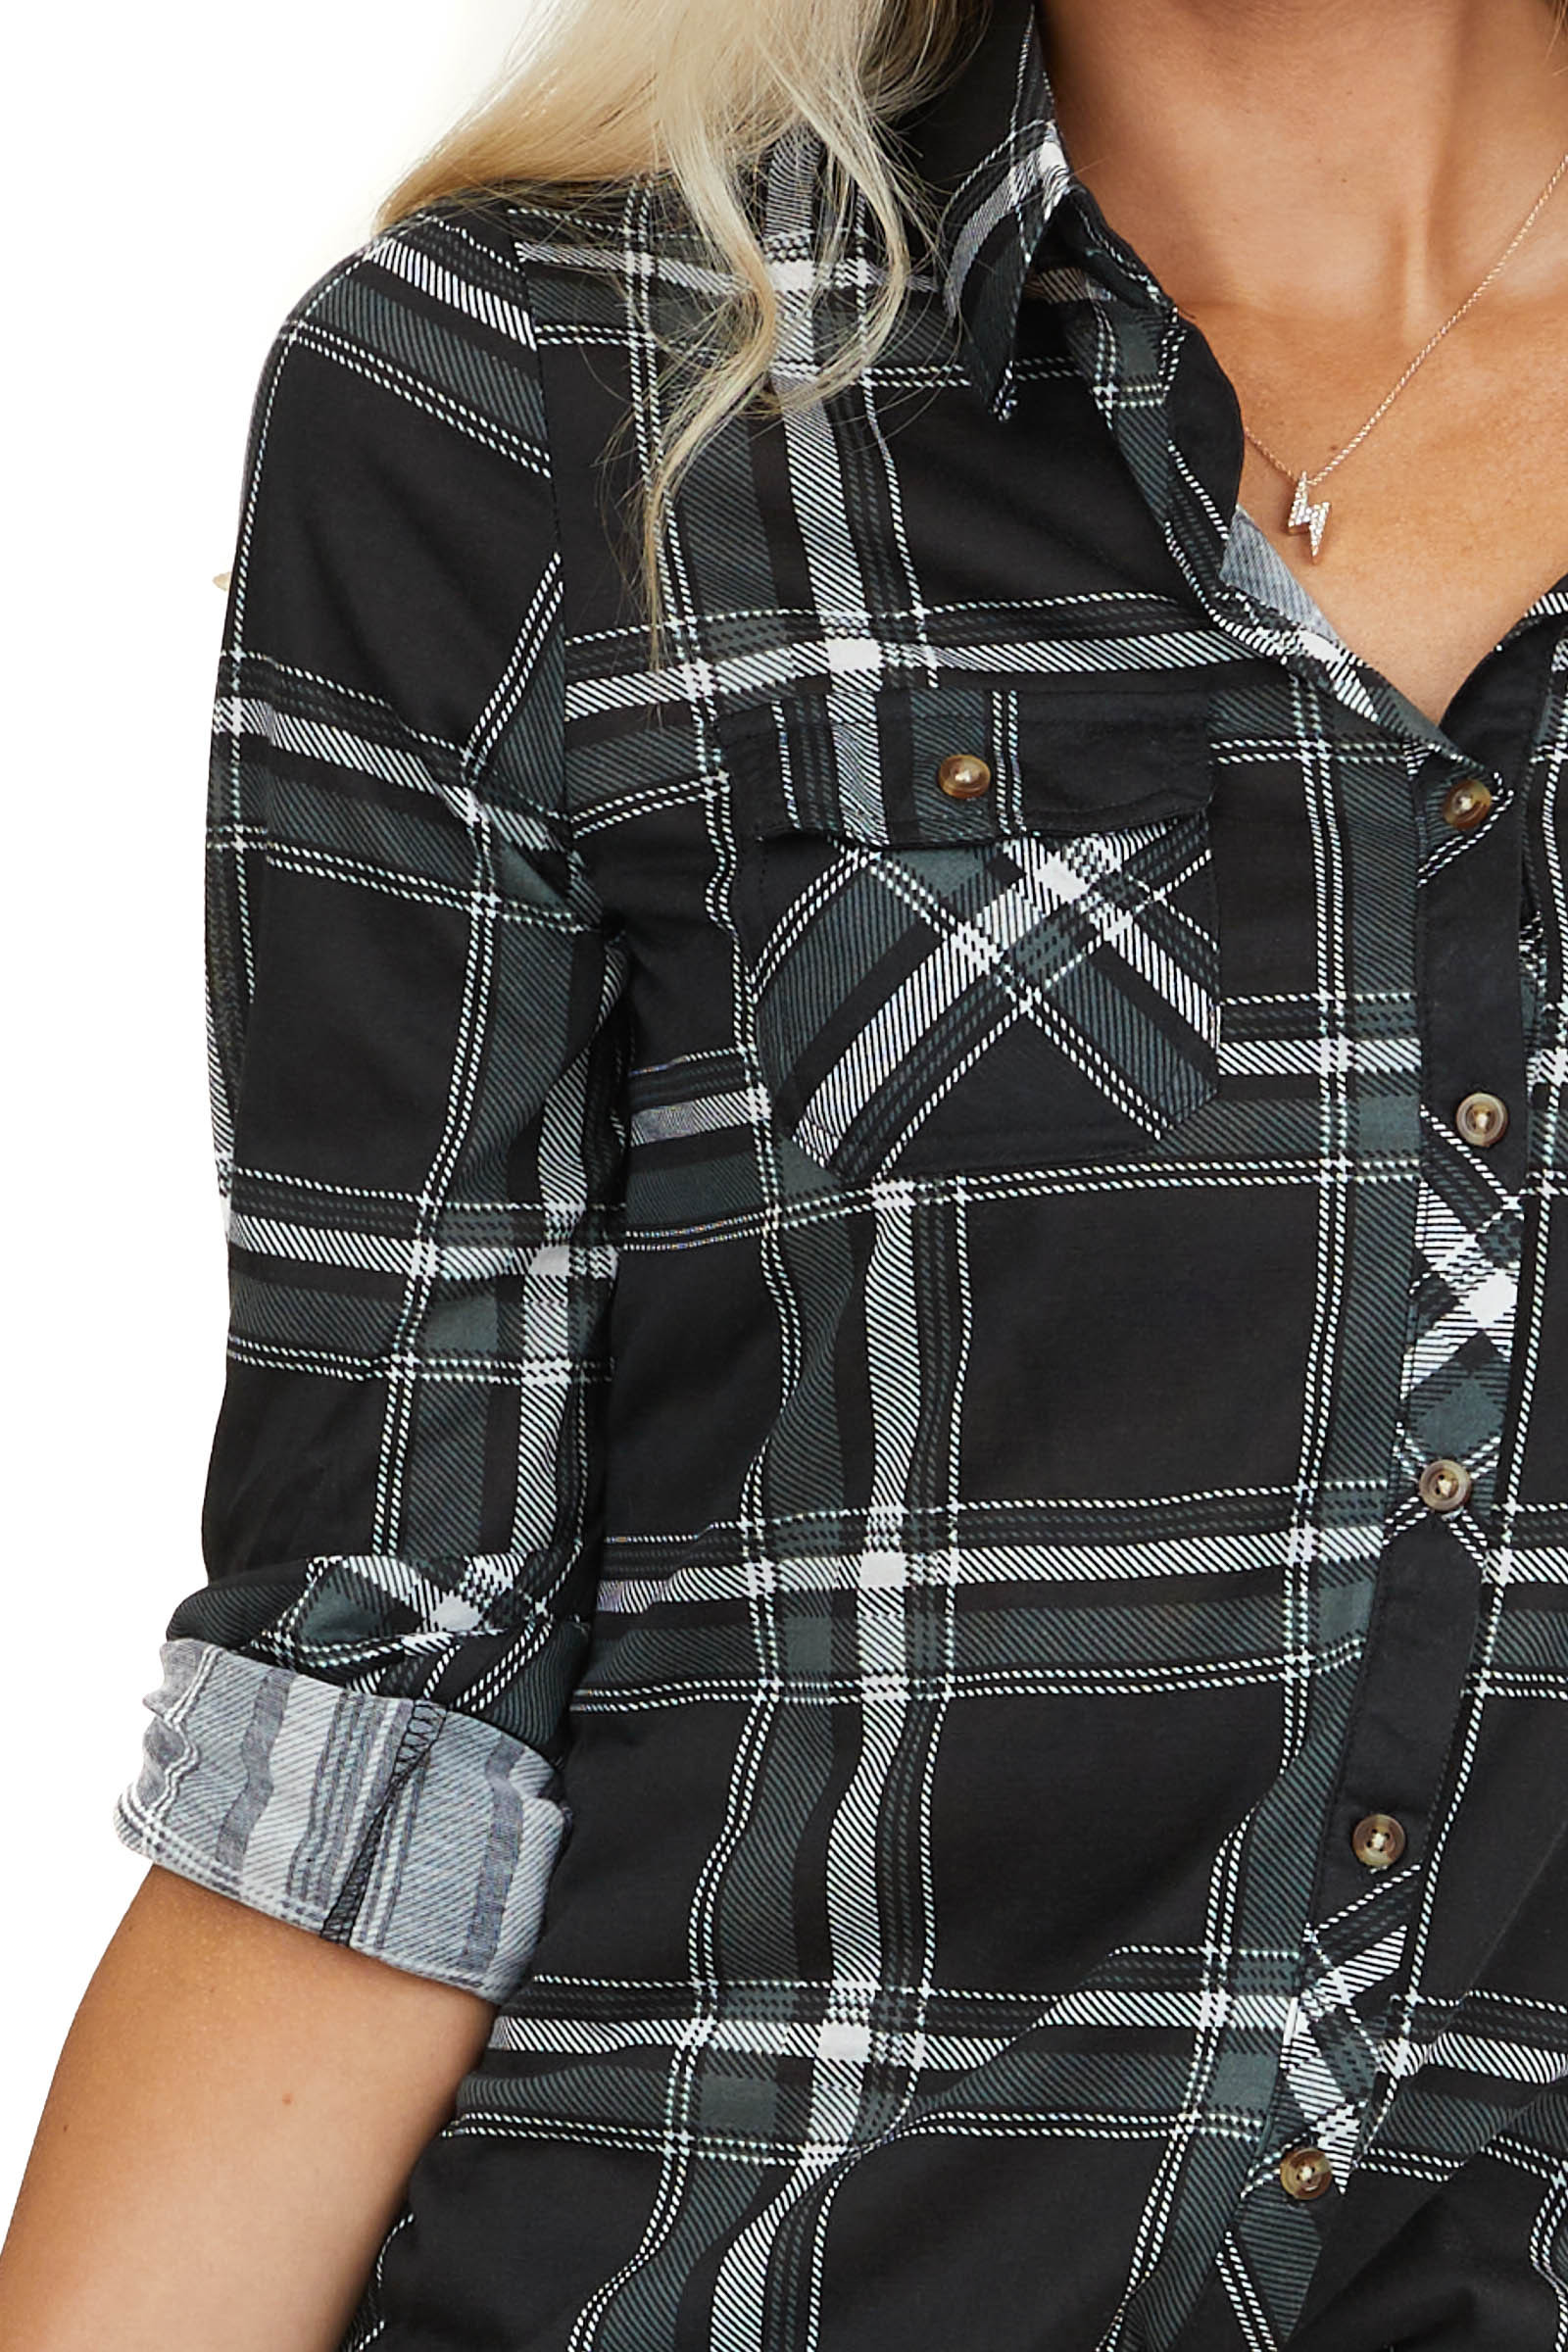 Black and Charcoal Plaid Button Up Top with Chest Pockets